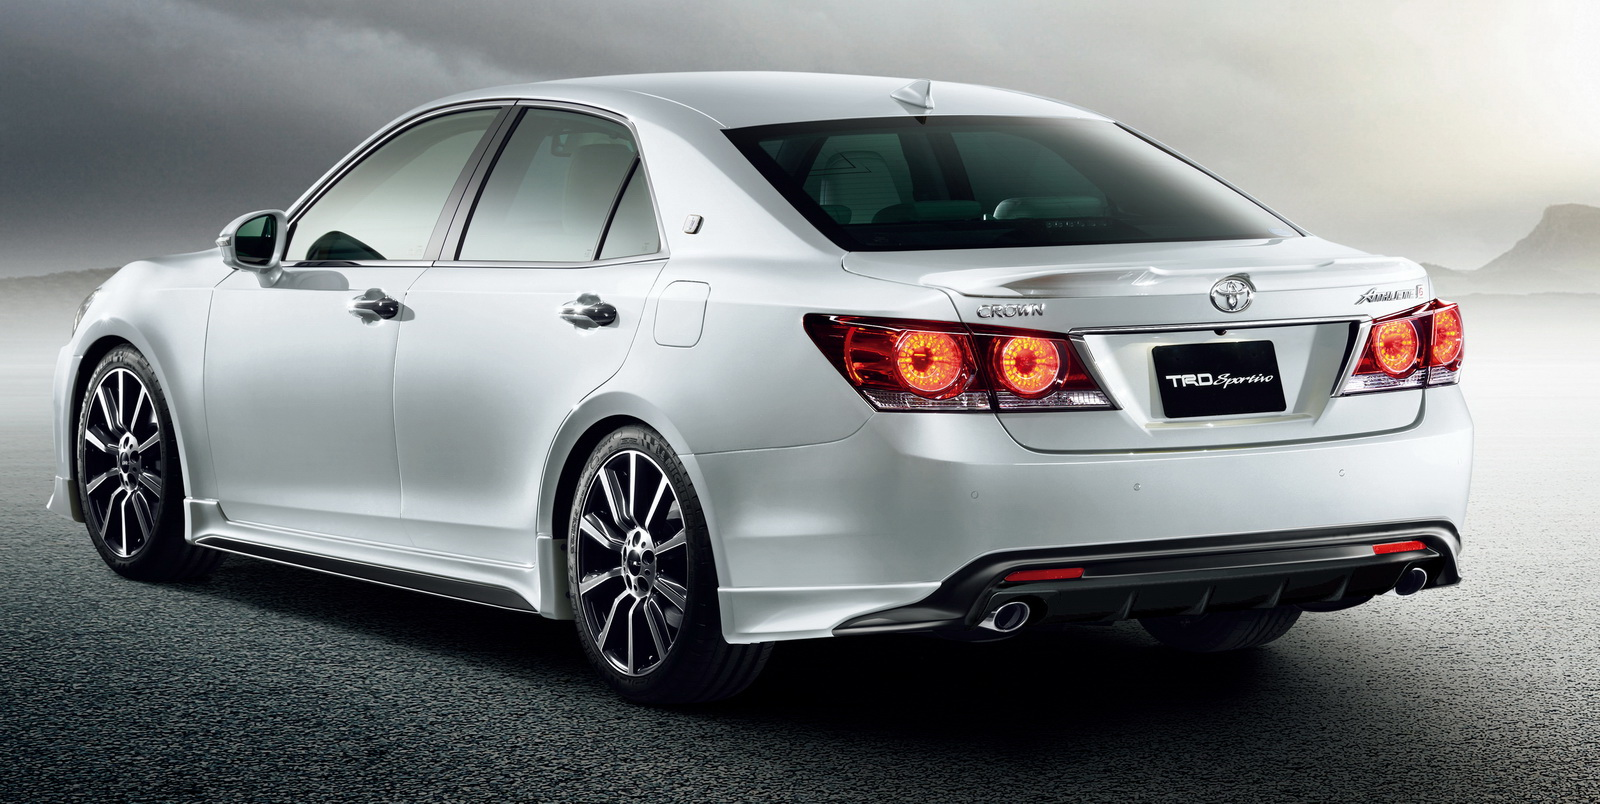 Toyota Avalon Top as well Maxresdefault in addition Camryconsolevaultopen in addition Maxresdefault further Maxresdefault. on toyota camry